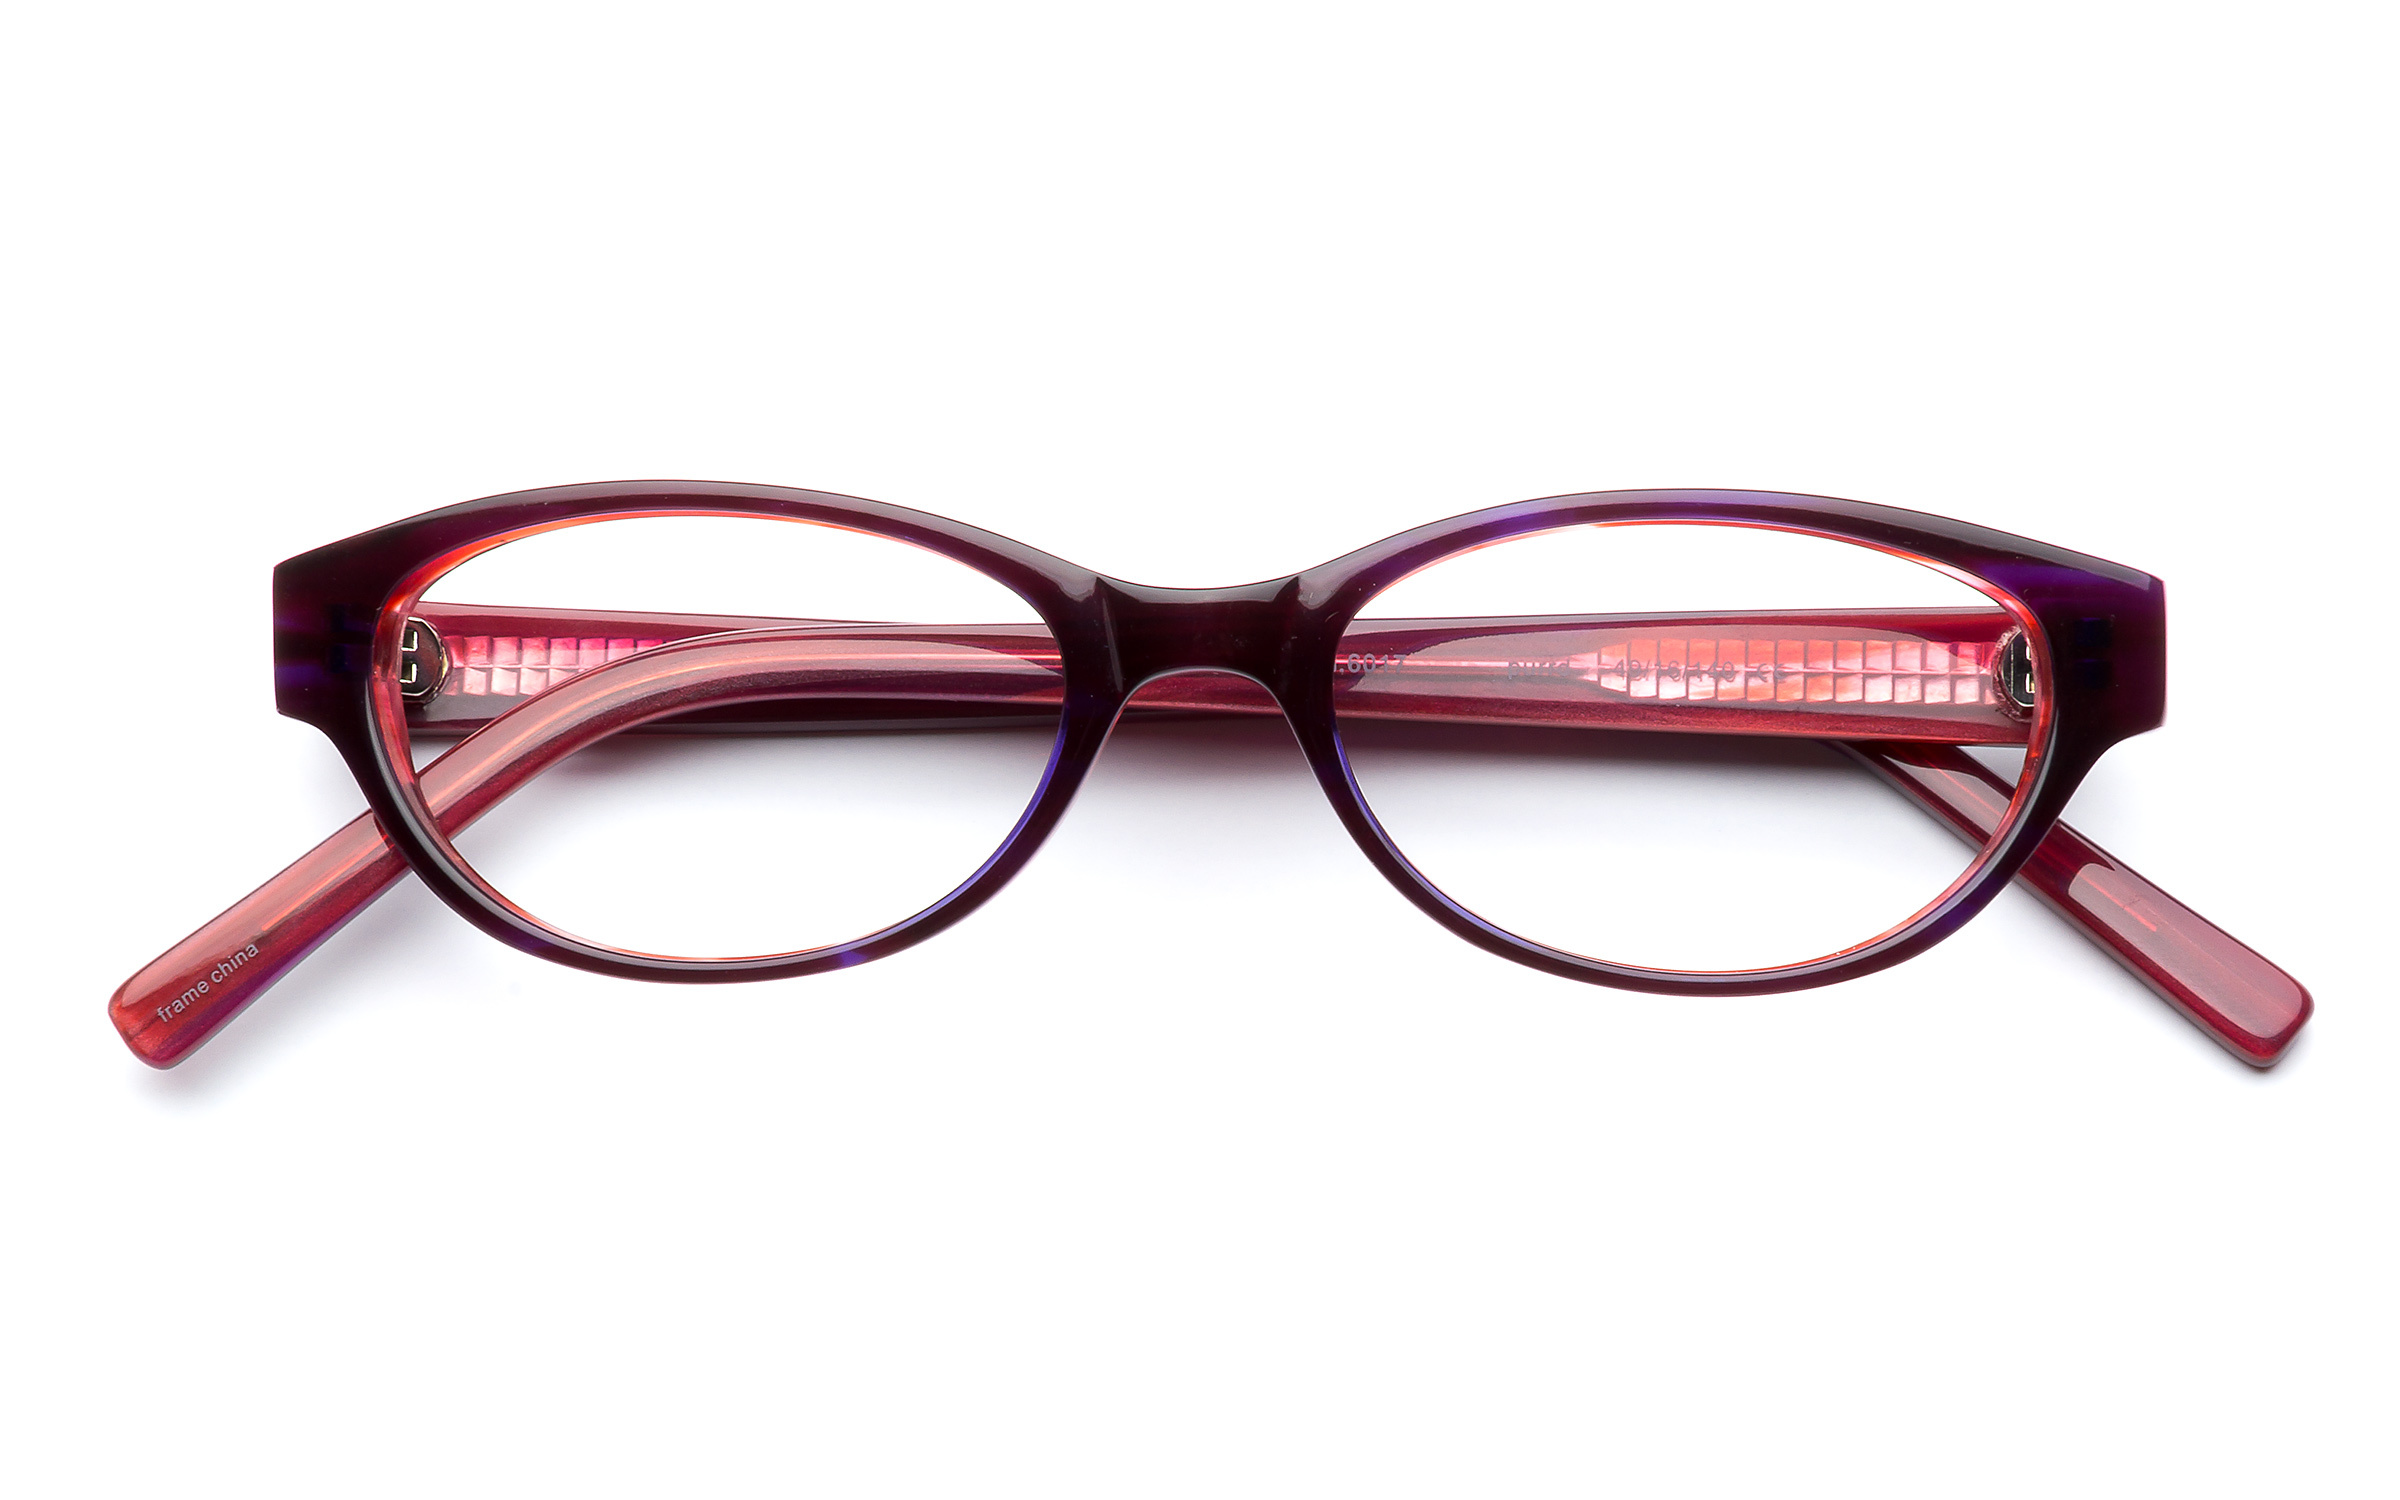 shop confidently for evergreen 6017 glasses with